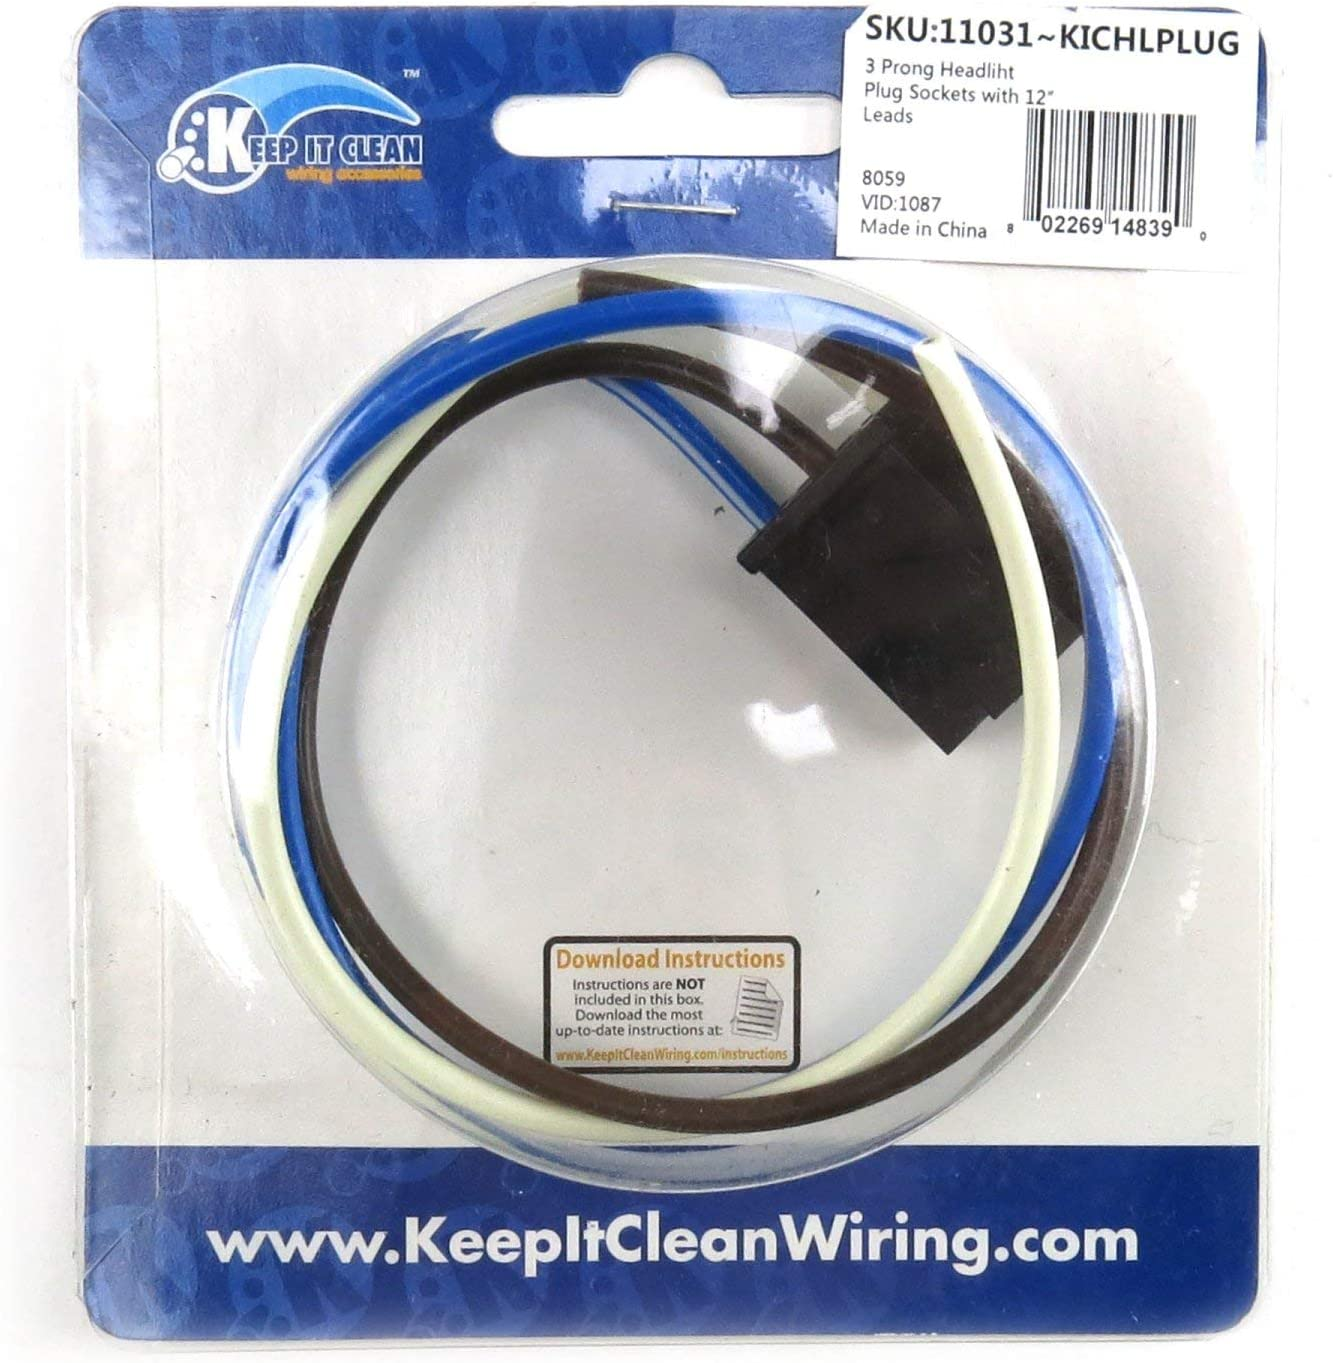 Keep It Clean 11031 3 Prong Headlight Plug Socket with 12 Leads